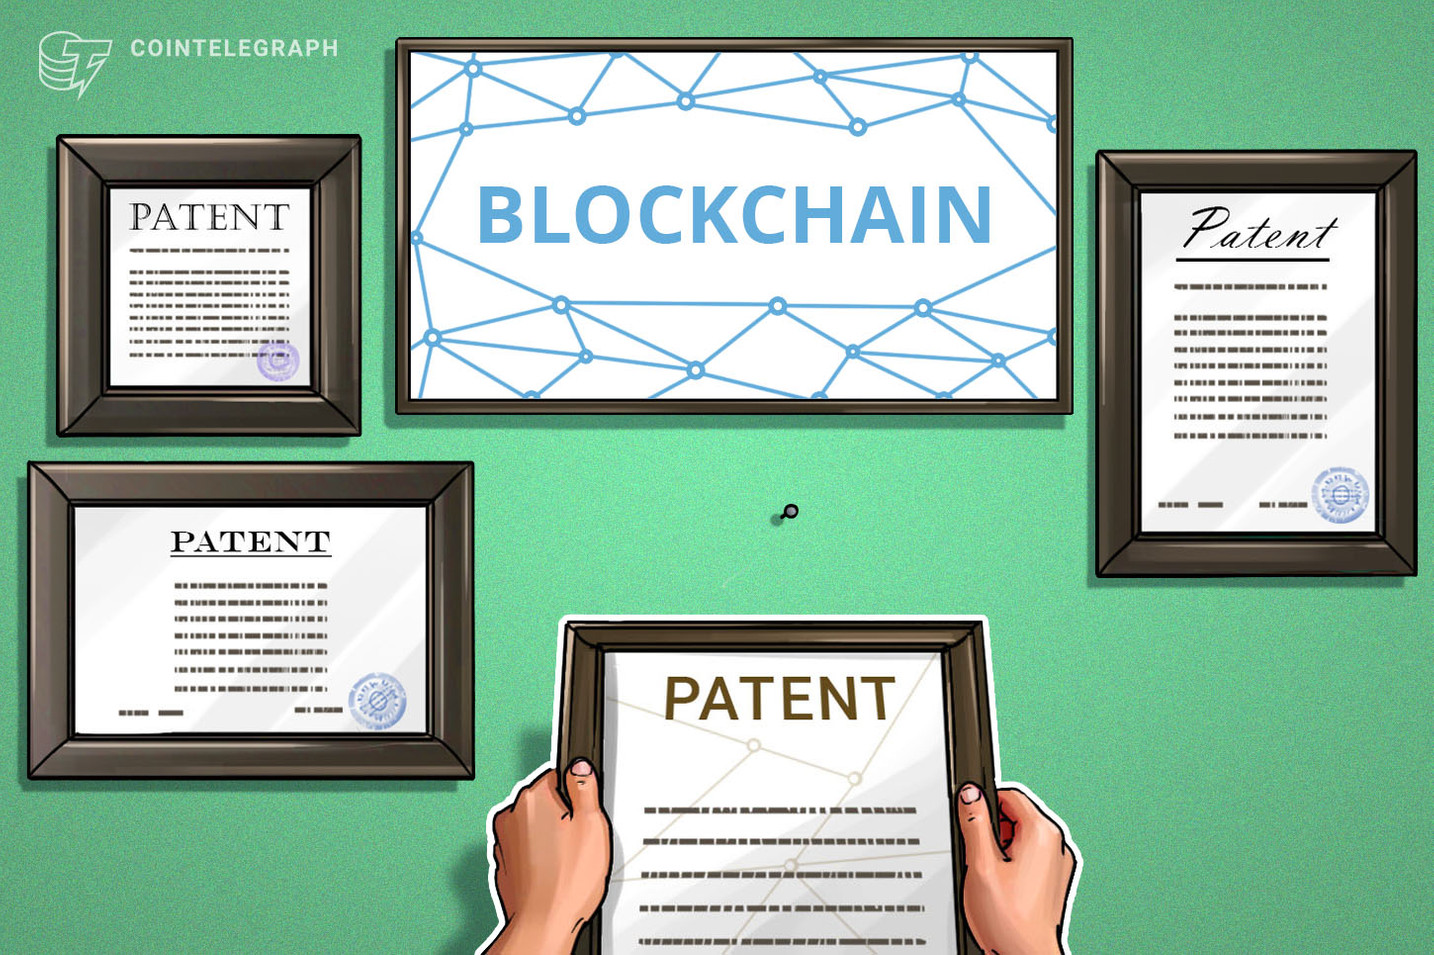 Alibaba, IBM Ranked Top Globally for Number of Blockchain Patent Filed